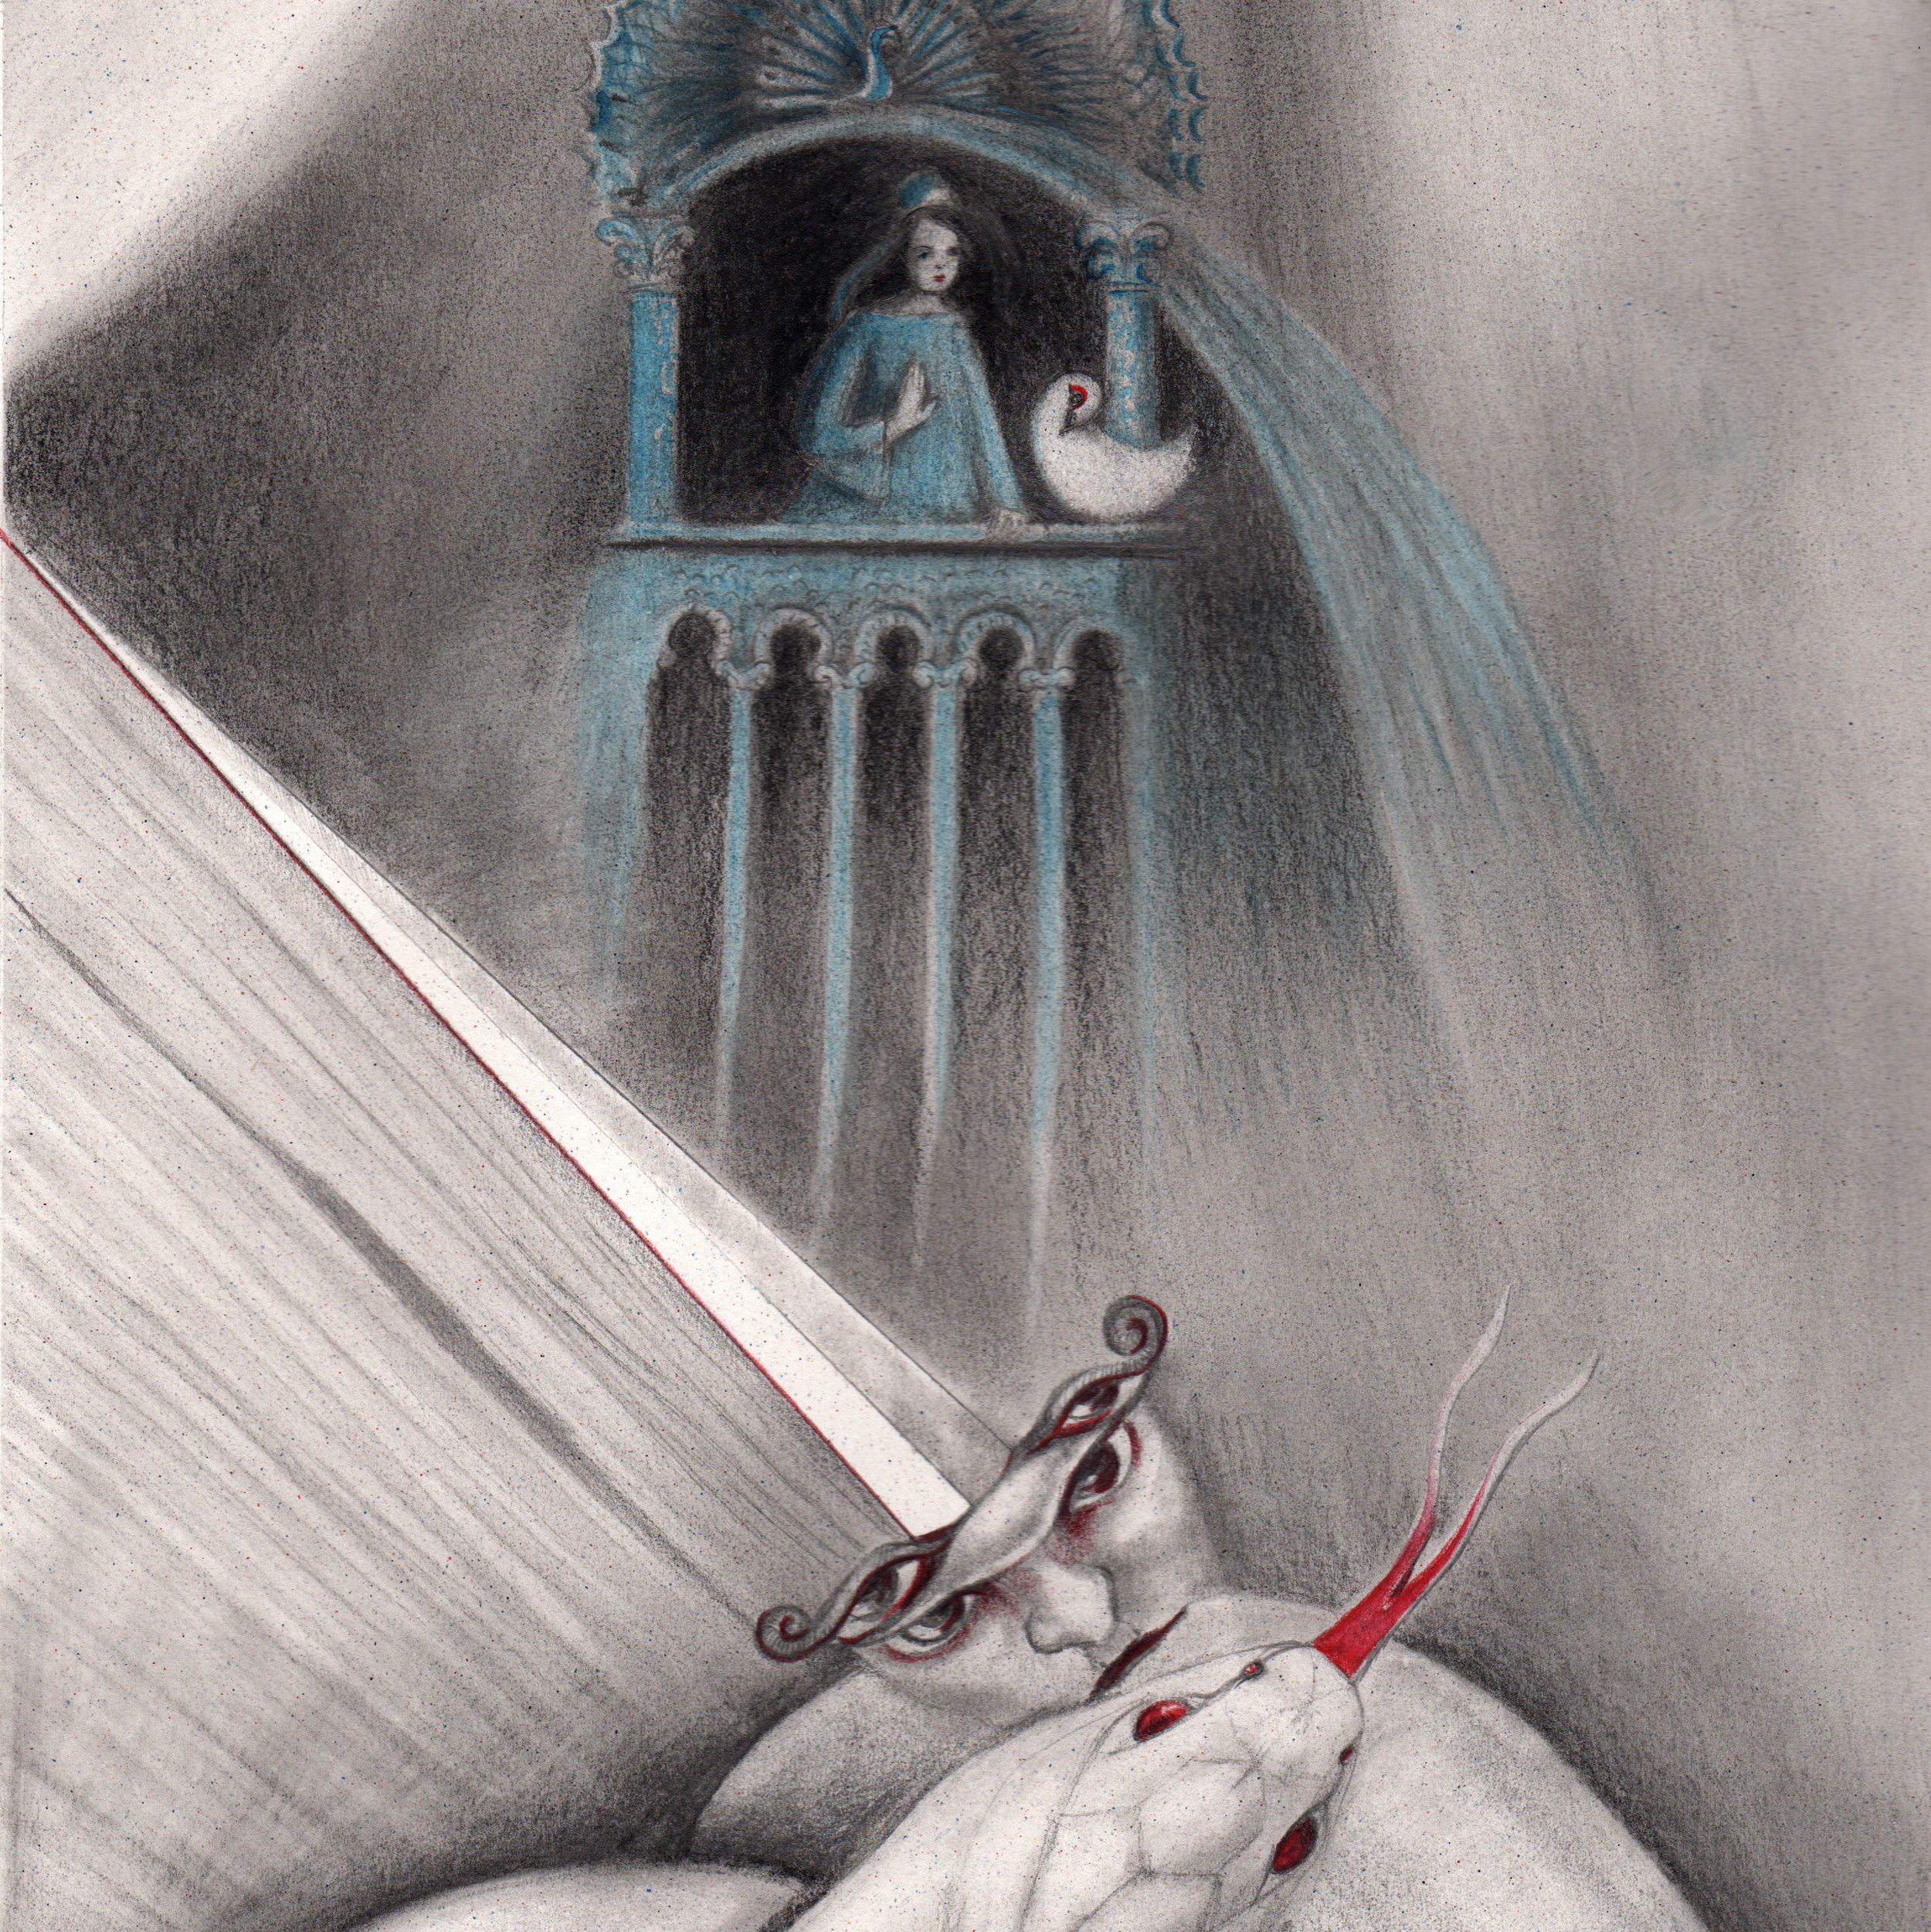 the bride of the spring - Armenian tale written by Sonya OrfalyanPencil Drawing2016